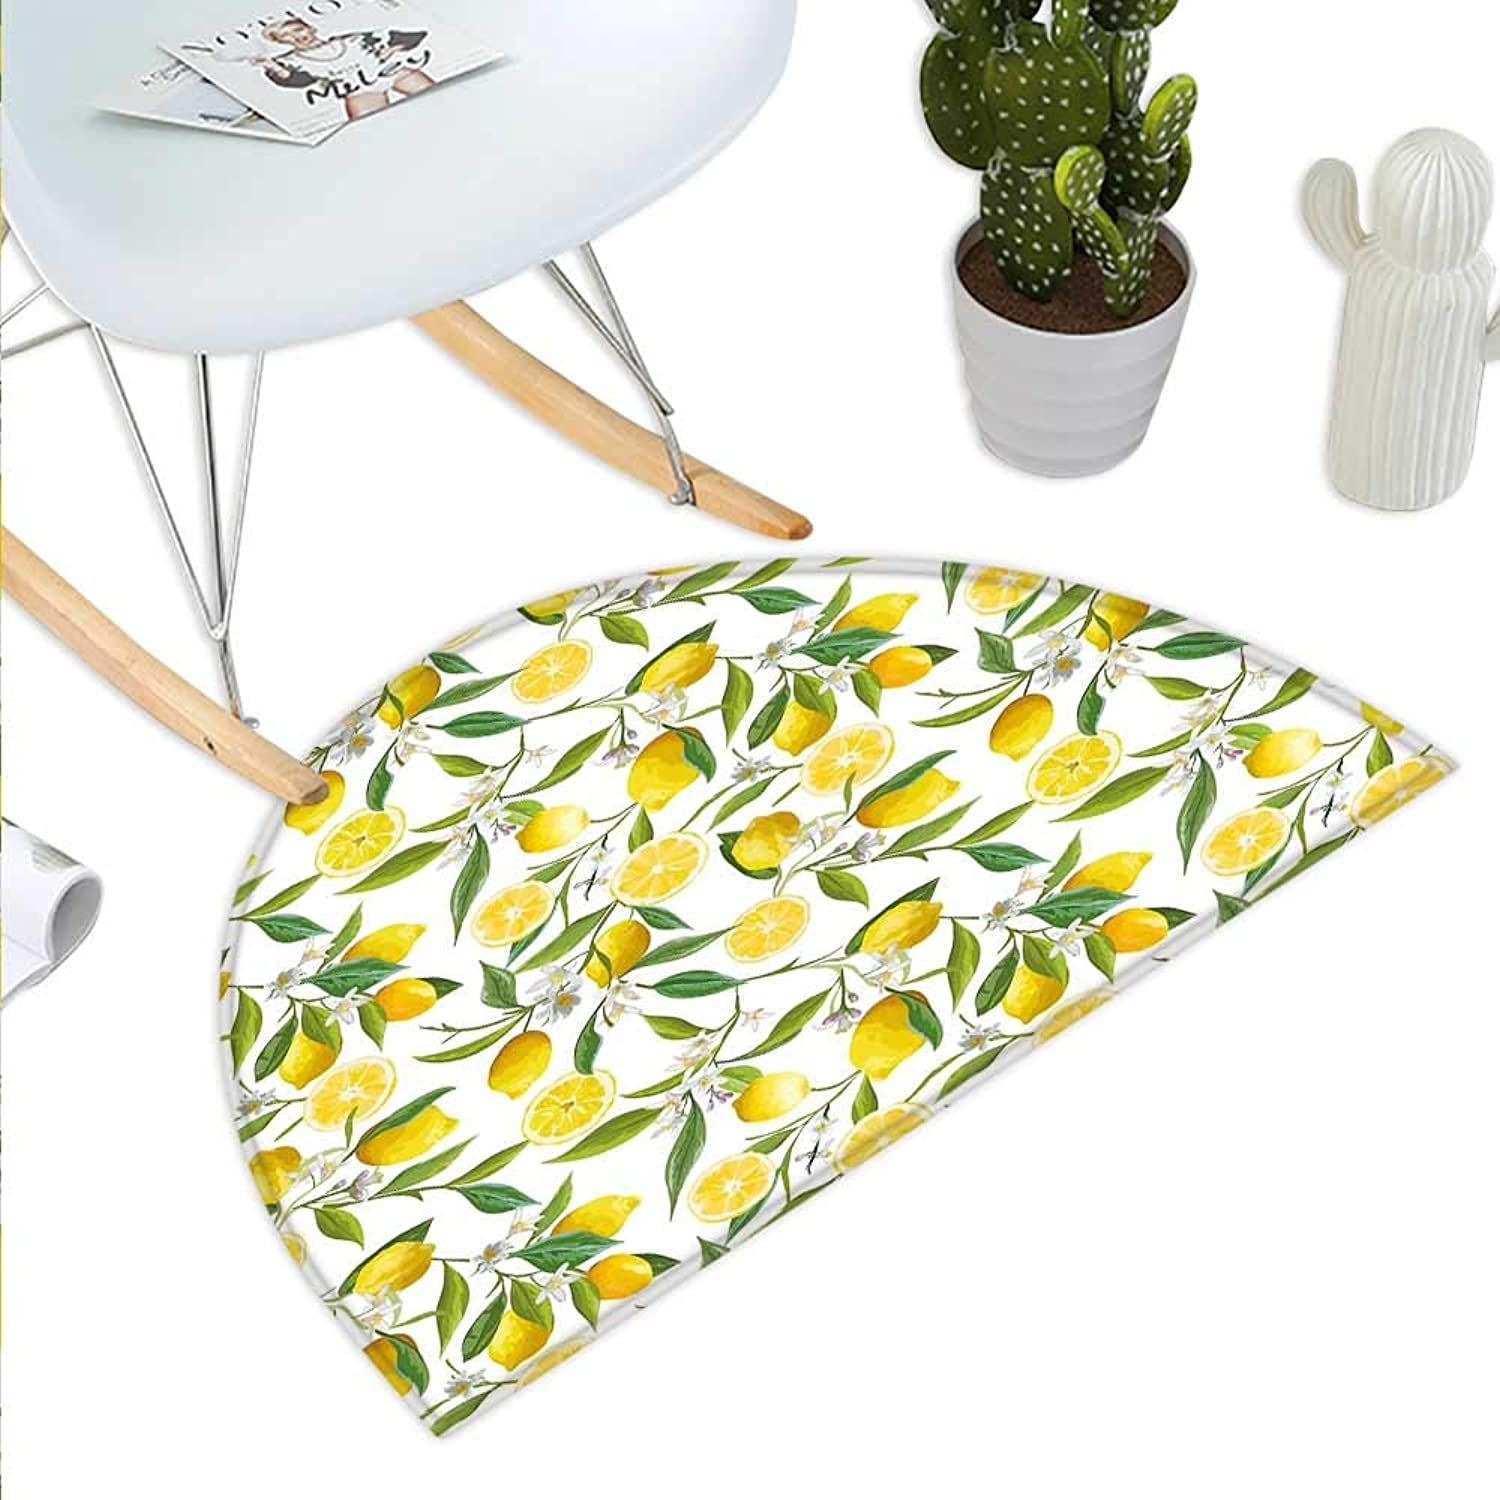 Nature Semicircle Doormat Exotic Lemon Tree Branches Yummy Delicious Kitchen Gardening Design Halfmoon doormats H 35.4  xD 53.1  Fern Green Yellow White